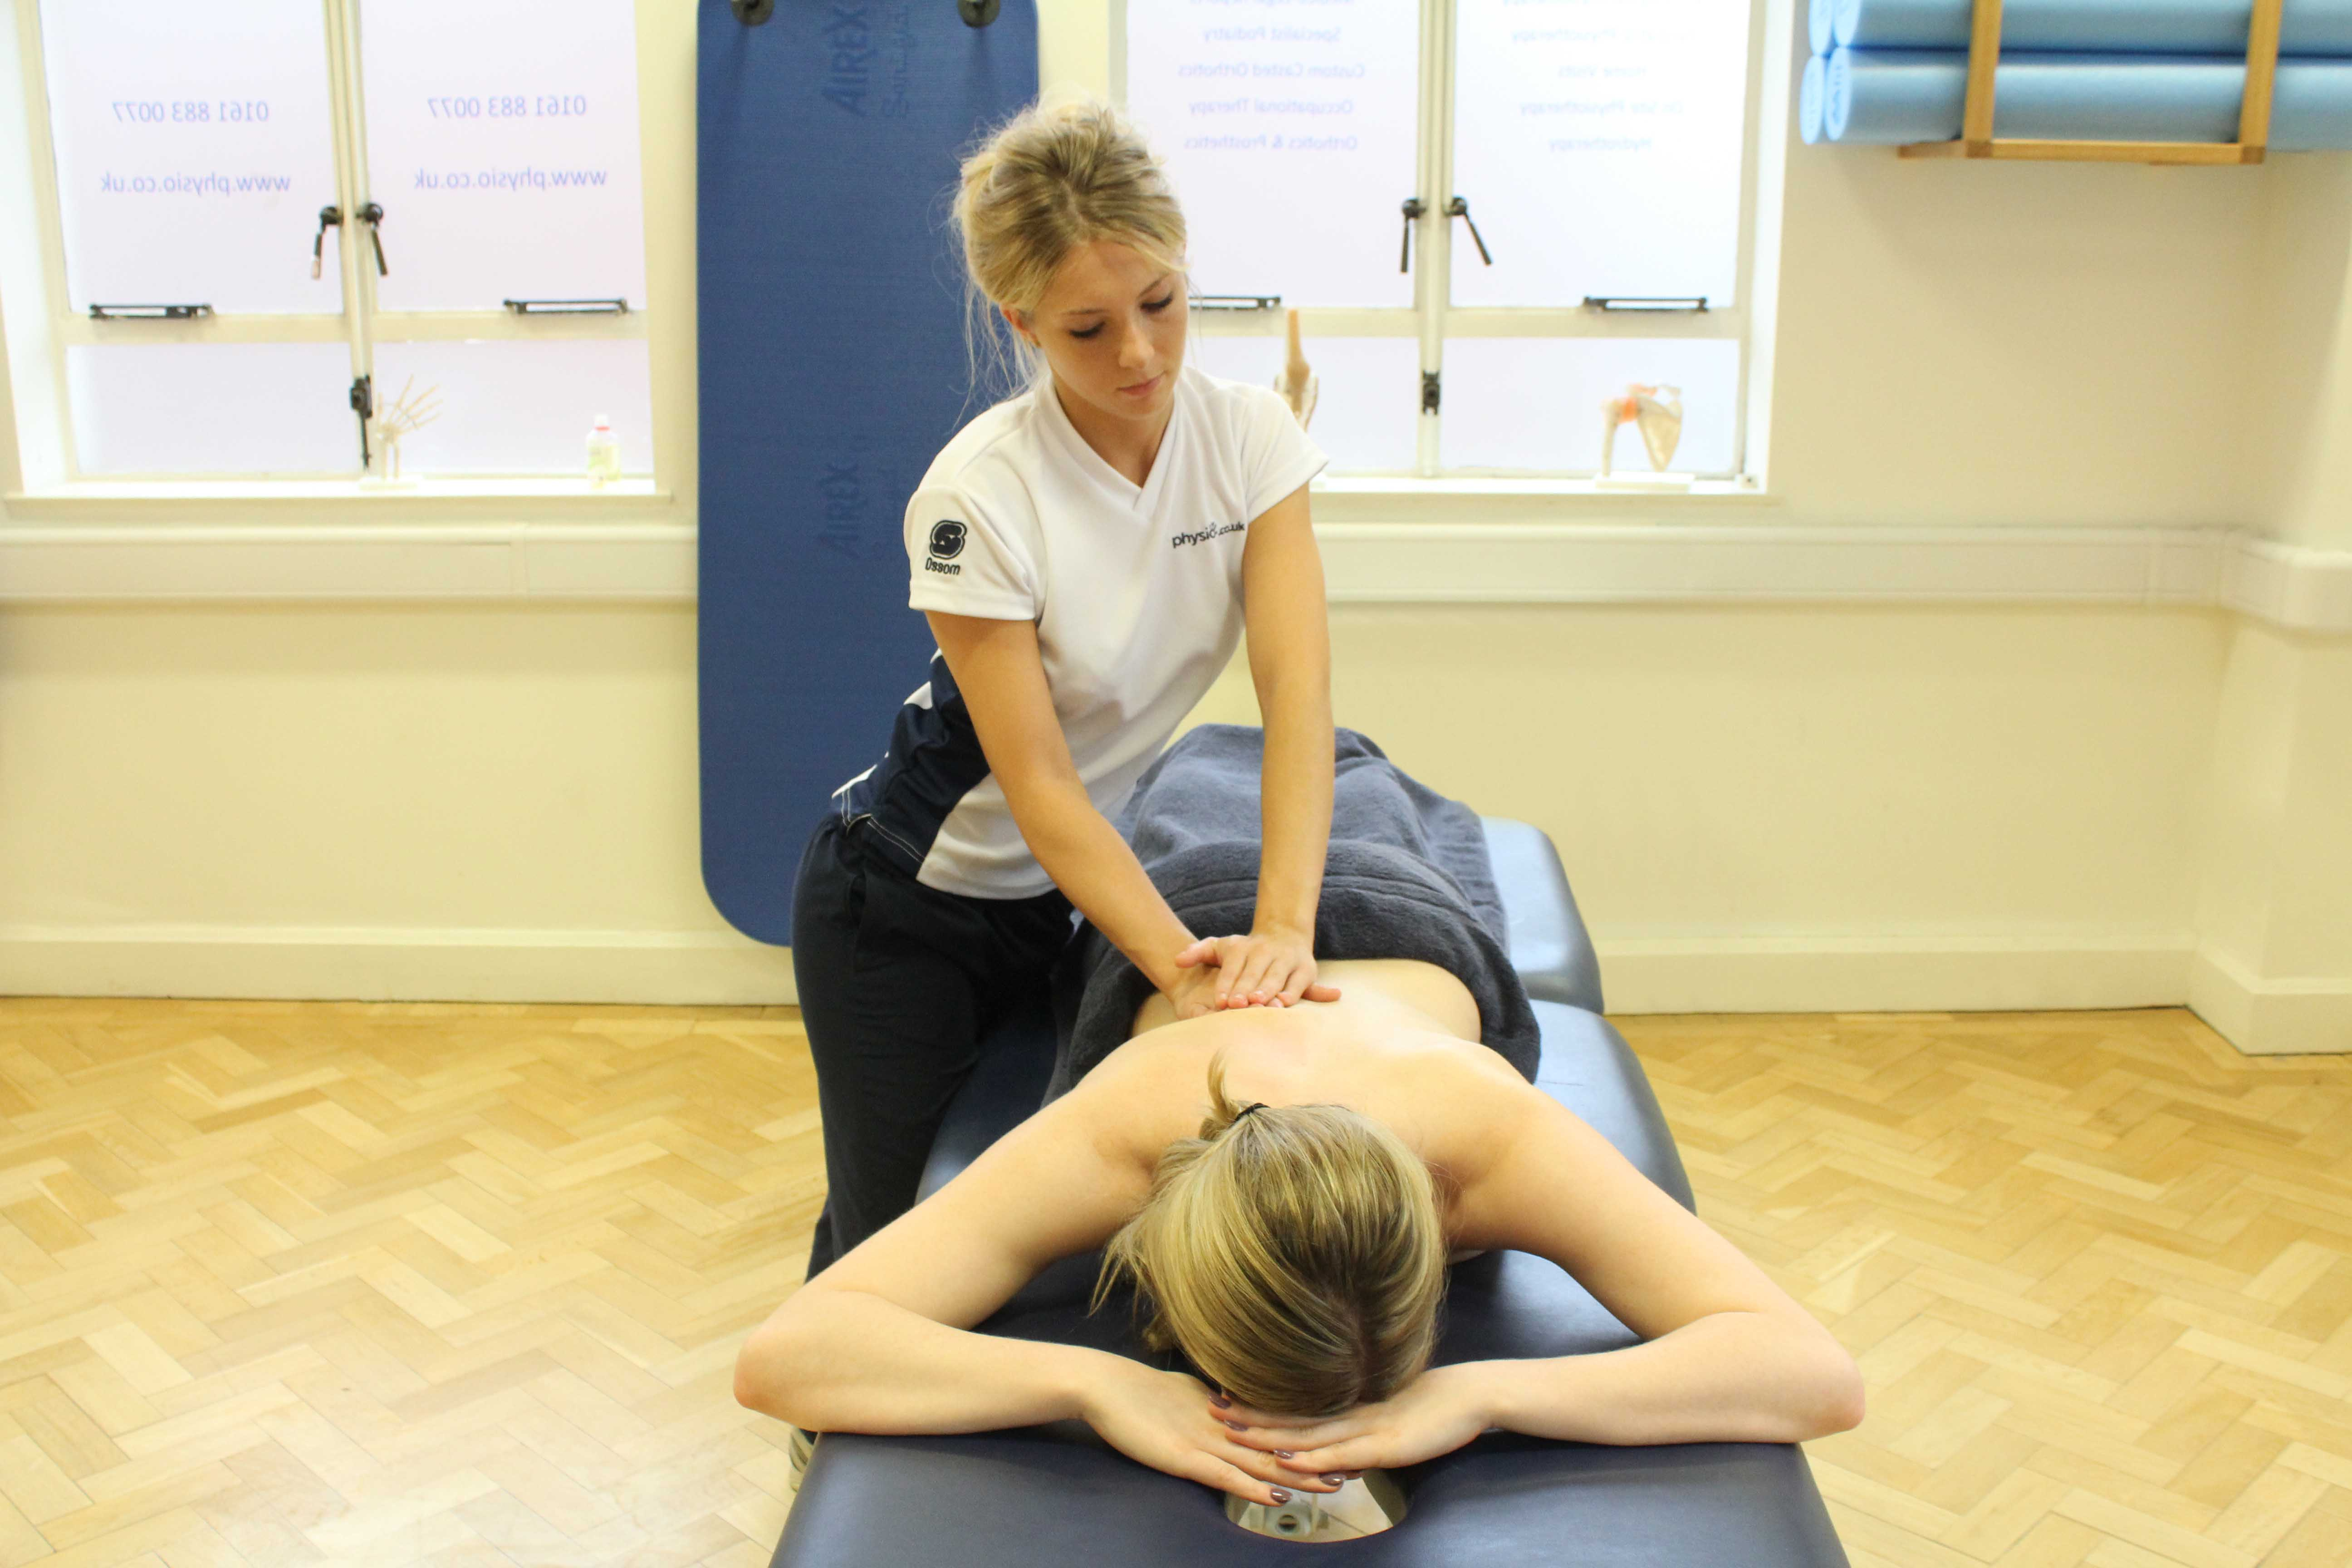 Beating percussion soft tissue massage applied by an experienced therapist